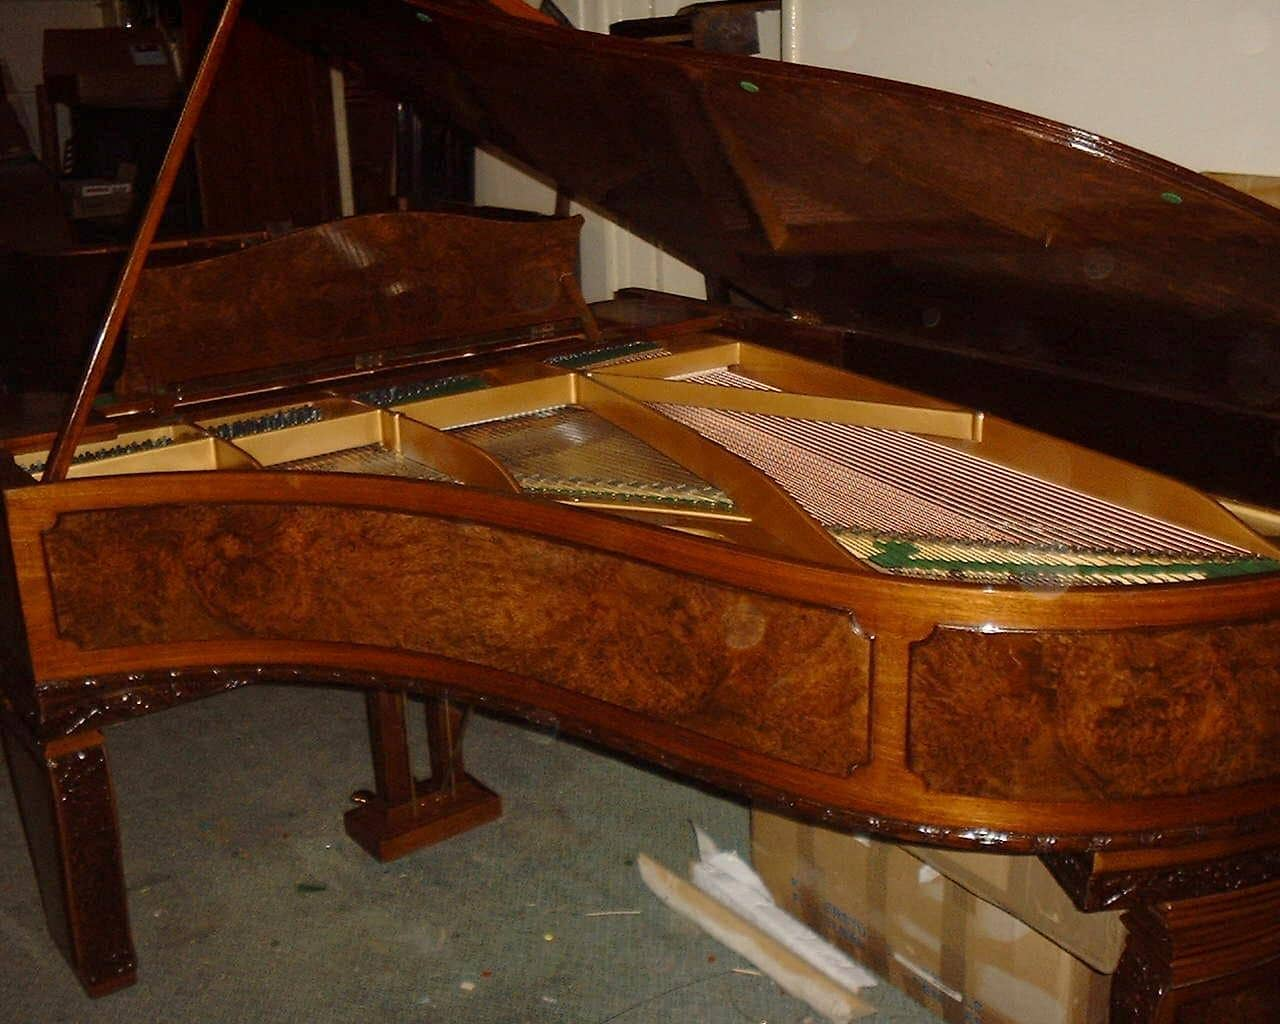 1913 Bechstein Grand Piano Art Nouveau Rear view